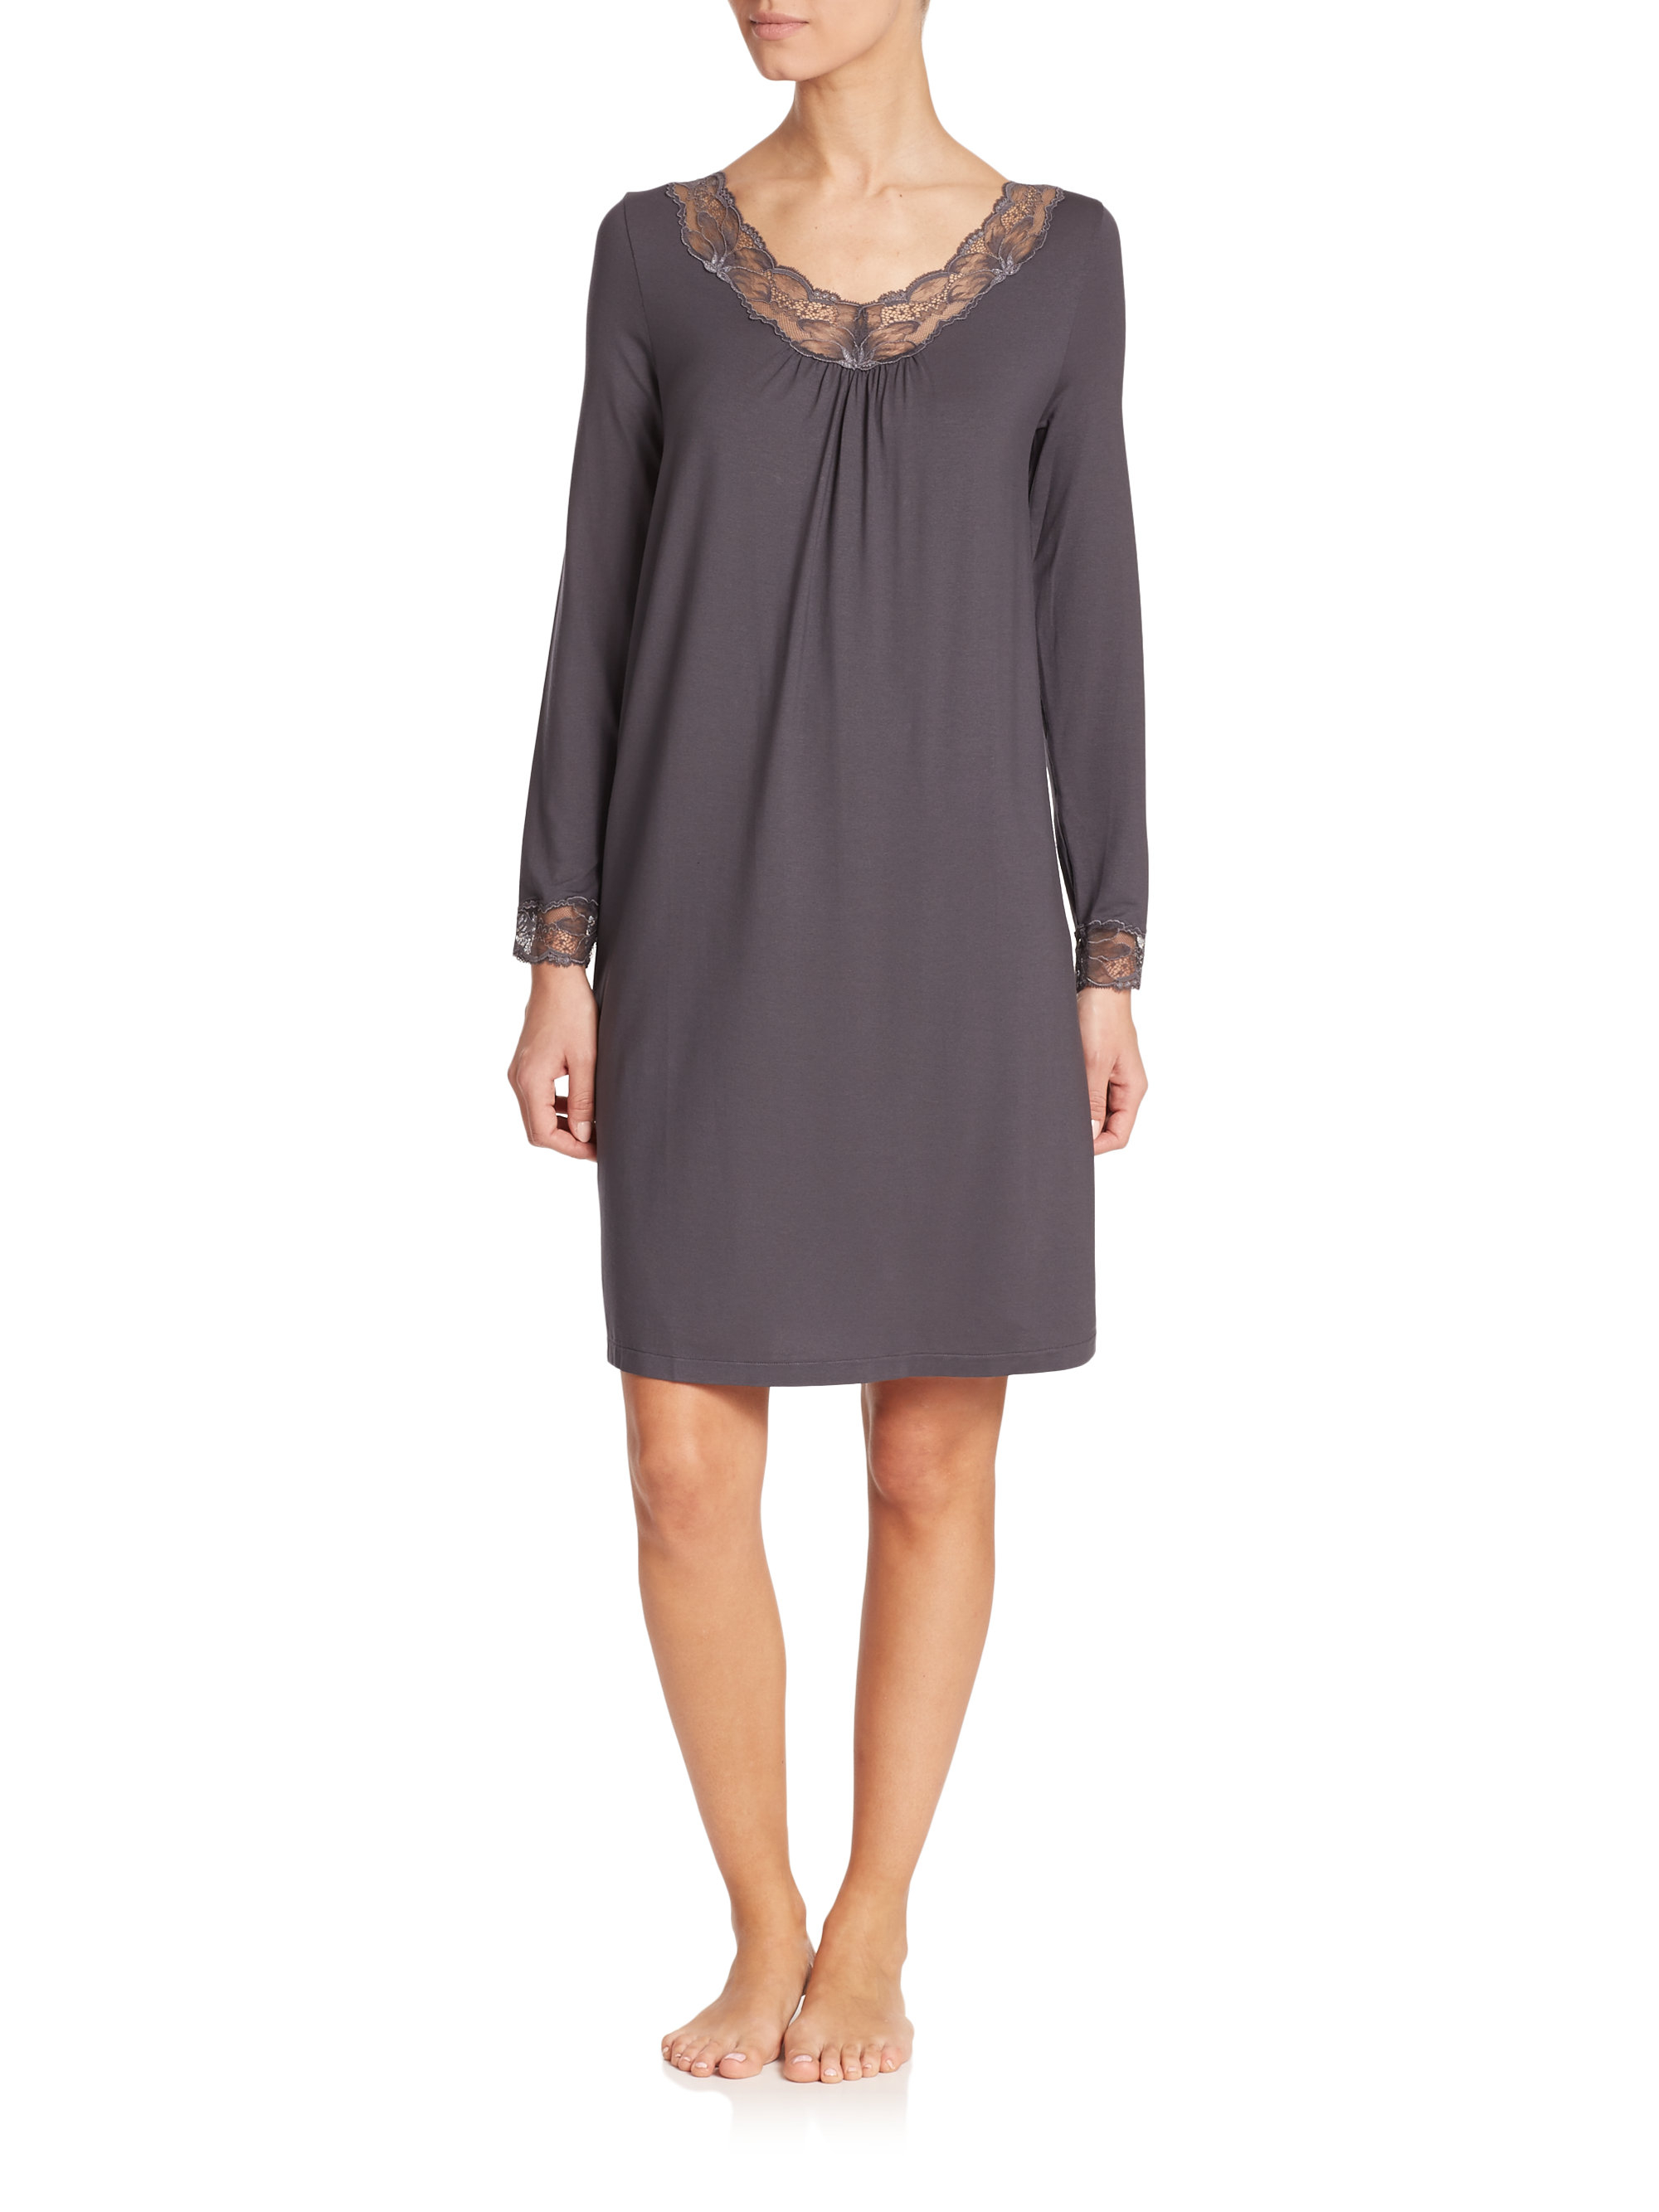 Lyst - Hanro Valencia Long-sleeve Lace-trimmed Jersey Nightgown in Gray 370b153aa